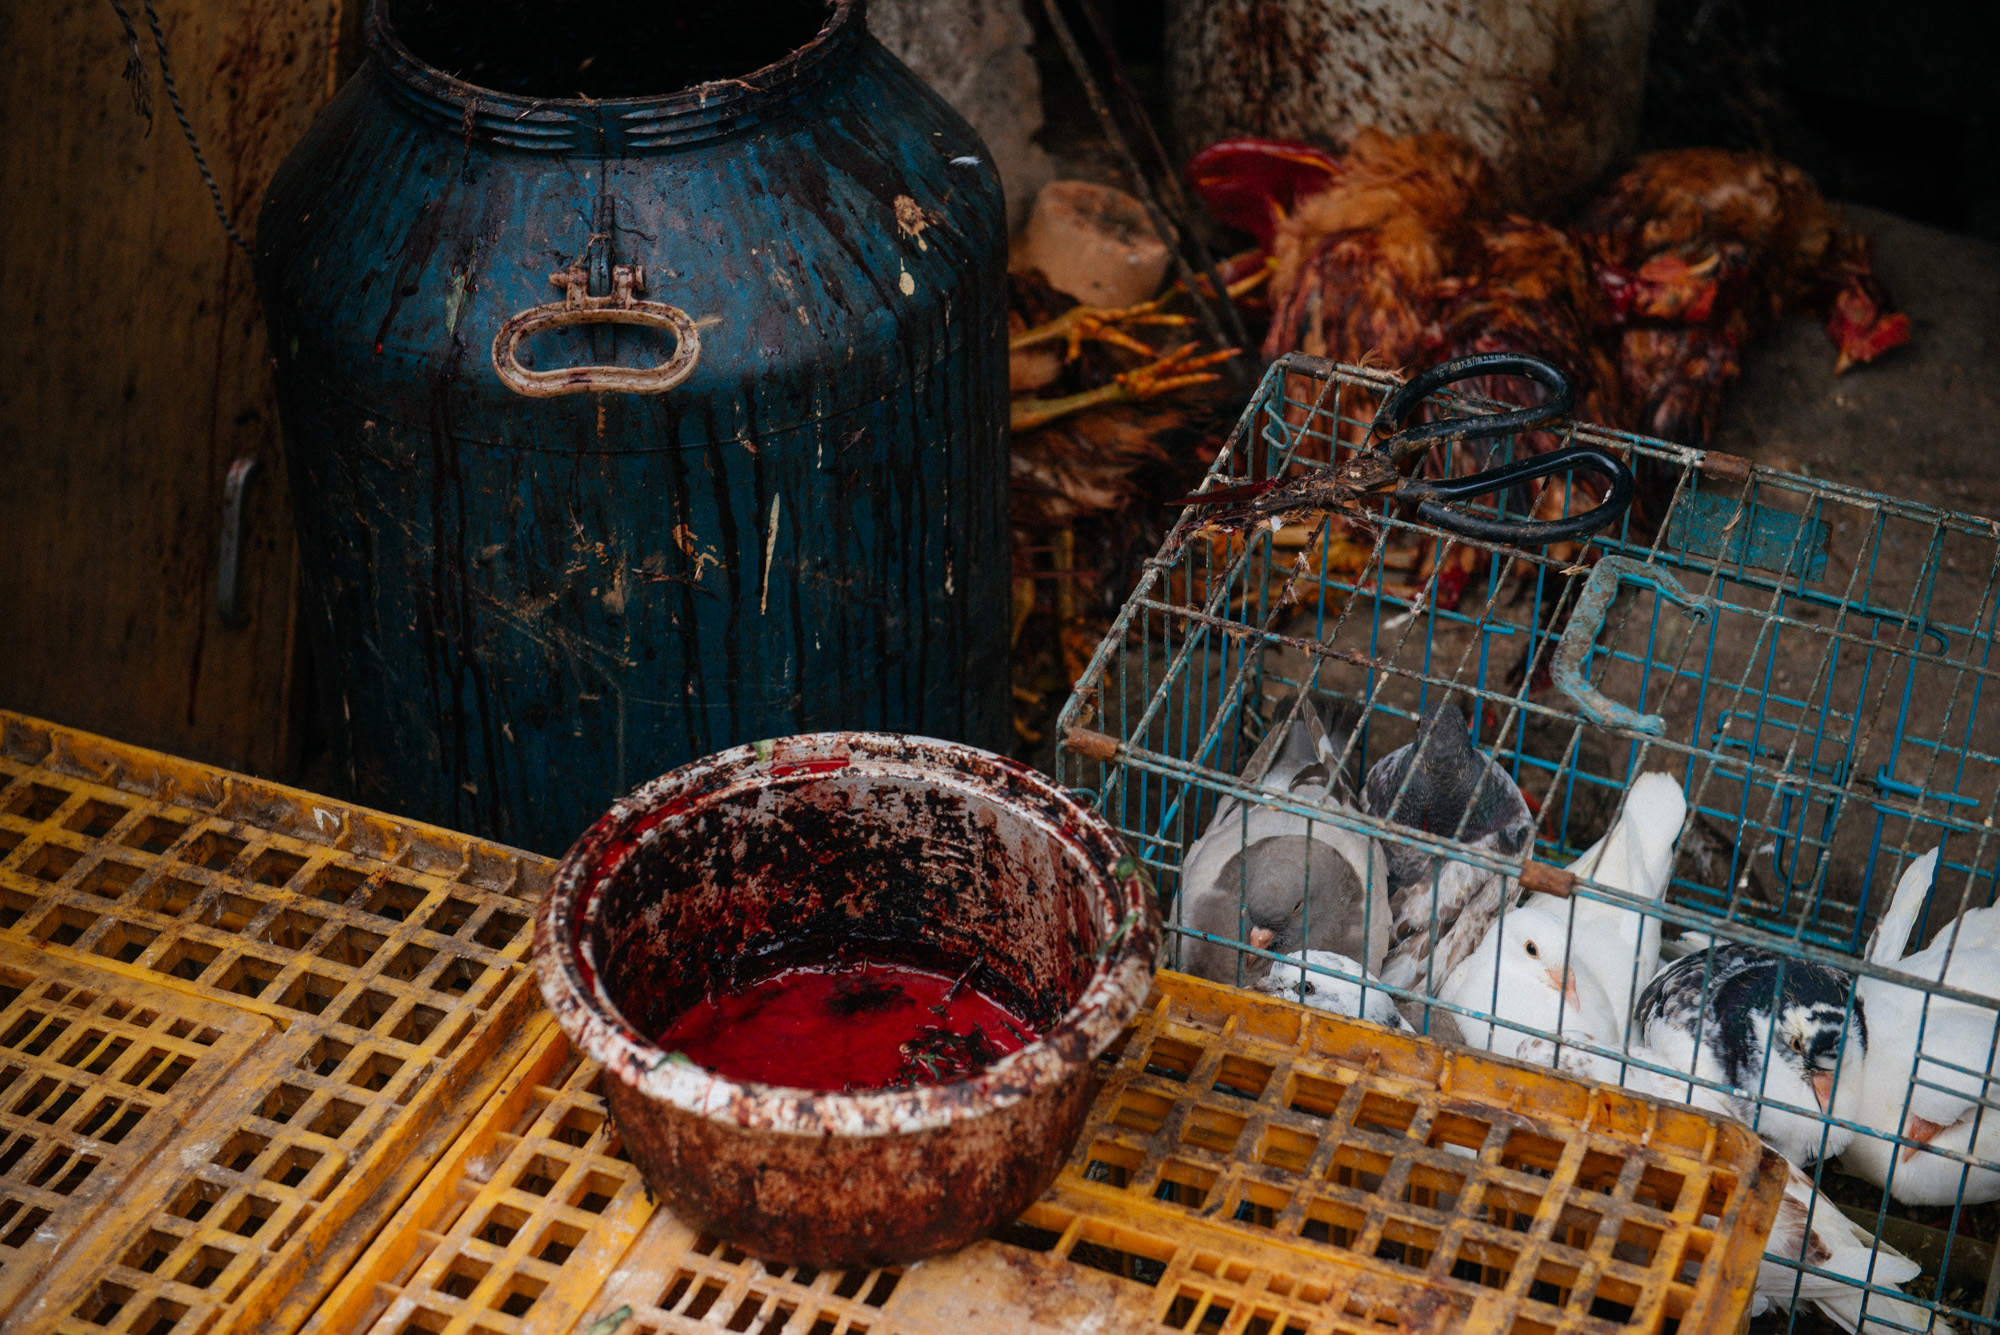 A bucket used to drain the blood of birds sits on a crate beside several dead chicken and a cage of doves. A few ducks, that have their legs tied, wait still on the ground, as if they thought that if they were quiet the woman wouldn't notice them.